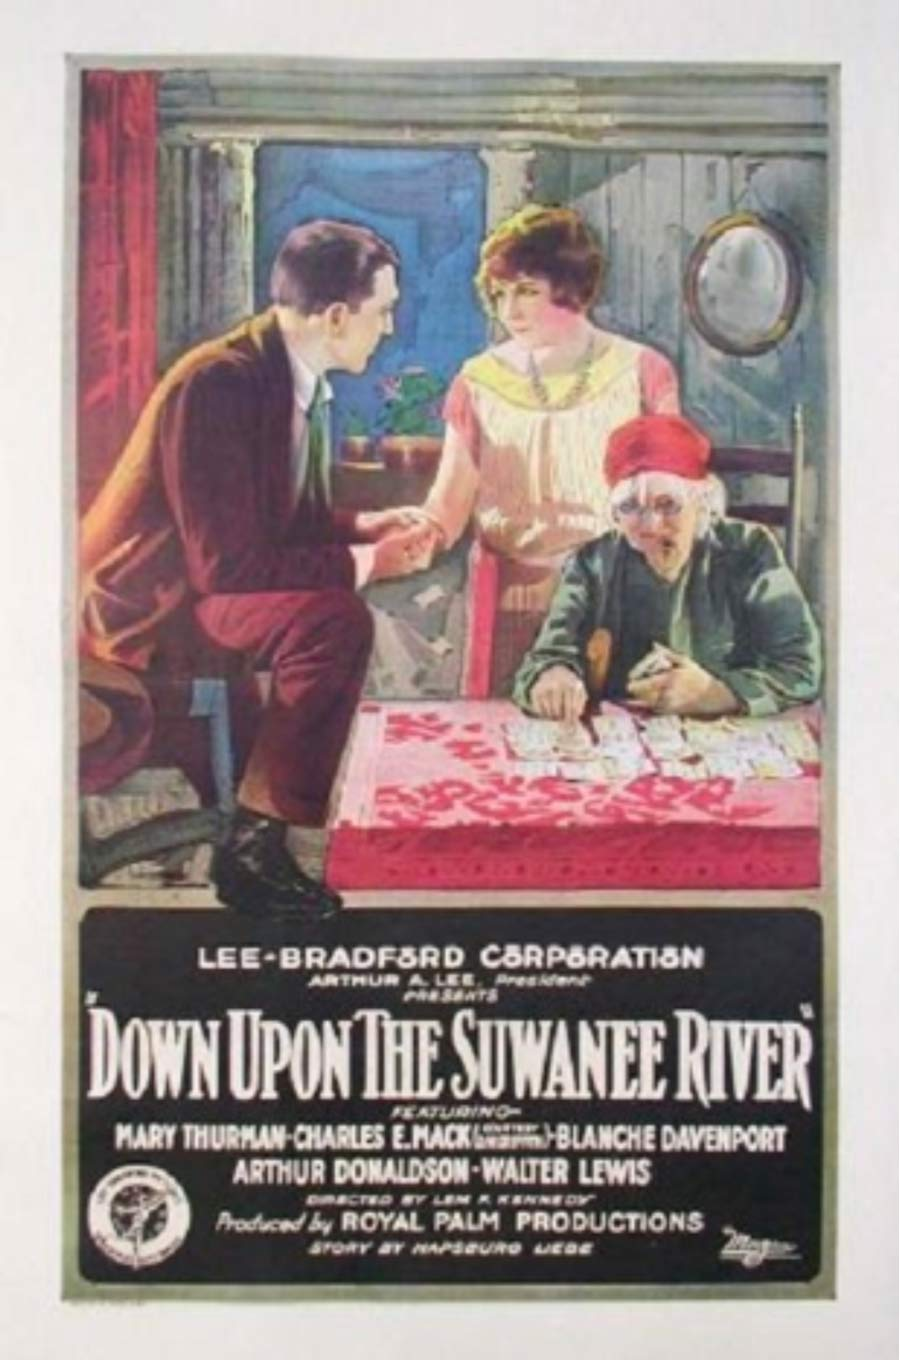 Poster of Down Upon the Suwanee River, released in 1925.